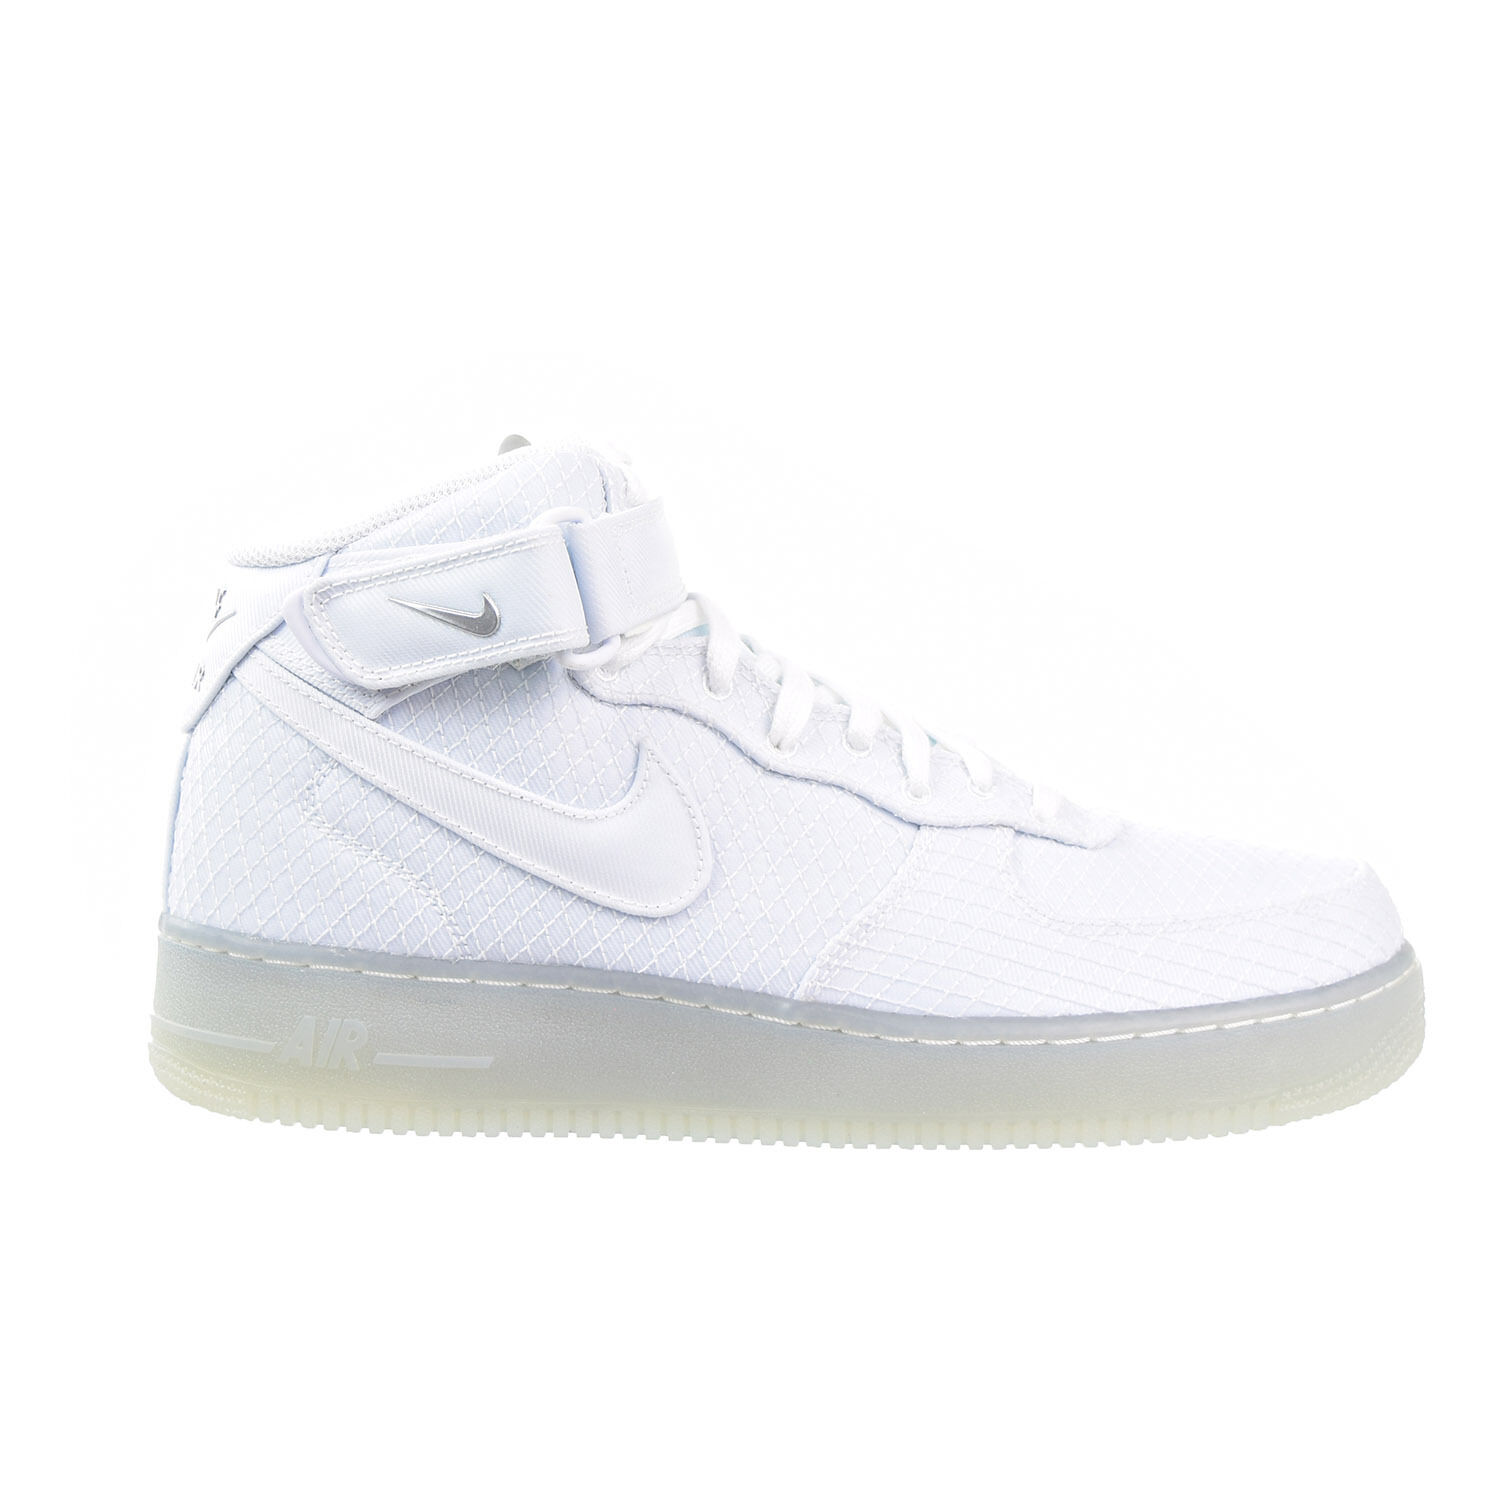 Nike Men's AIR FORCE 1 MID '07 LV8 Shoes White 804609-102 b